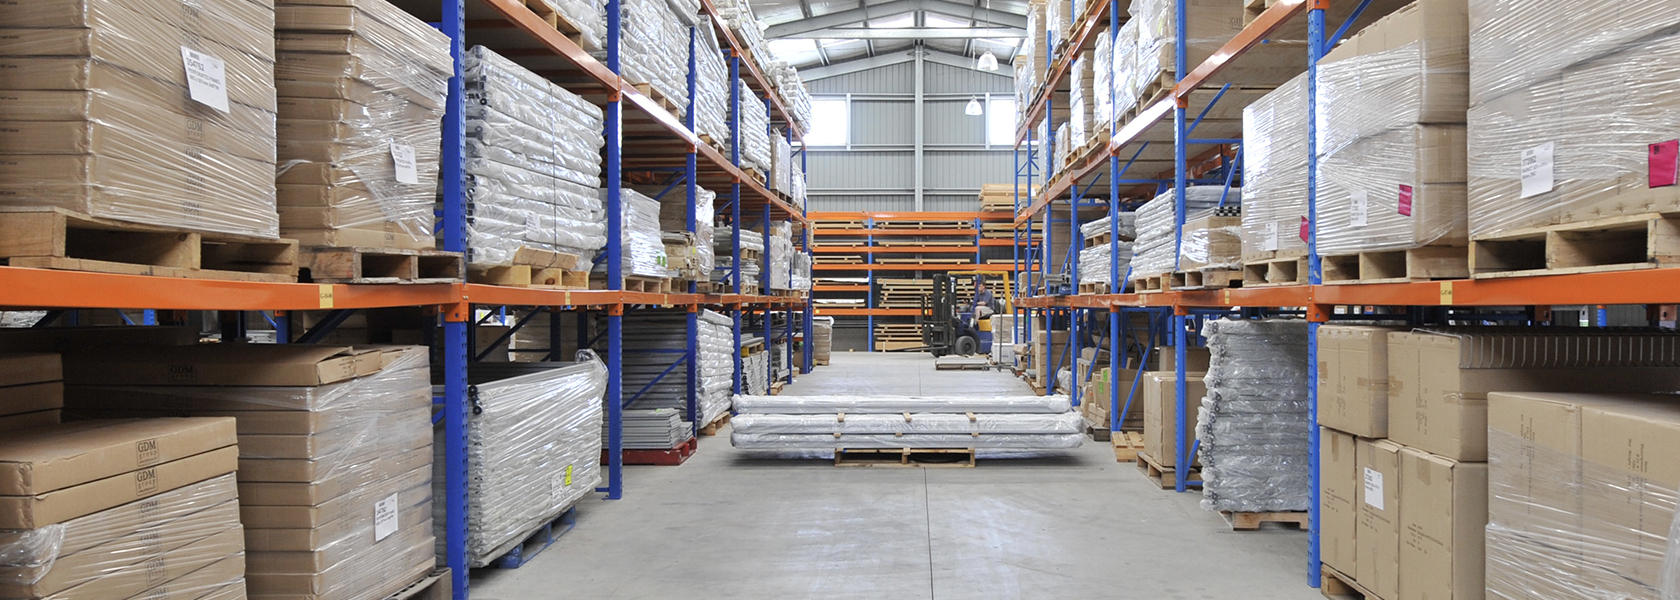 Heavy duty racking for storing loaded pallets.